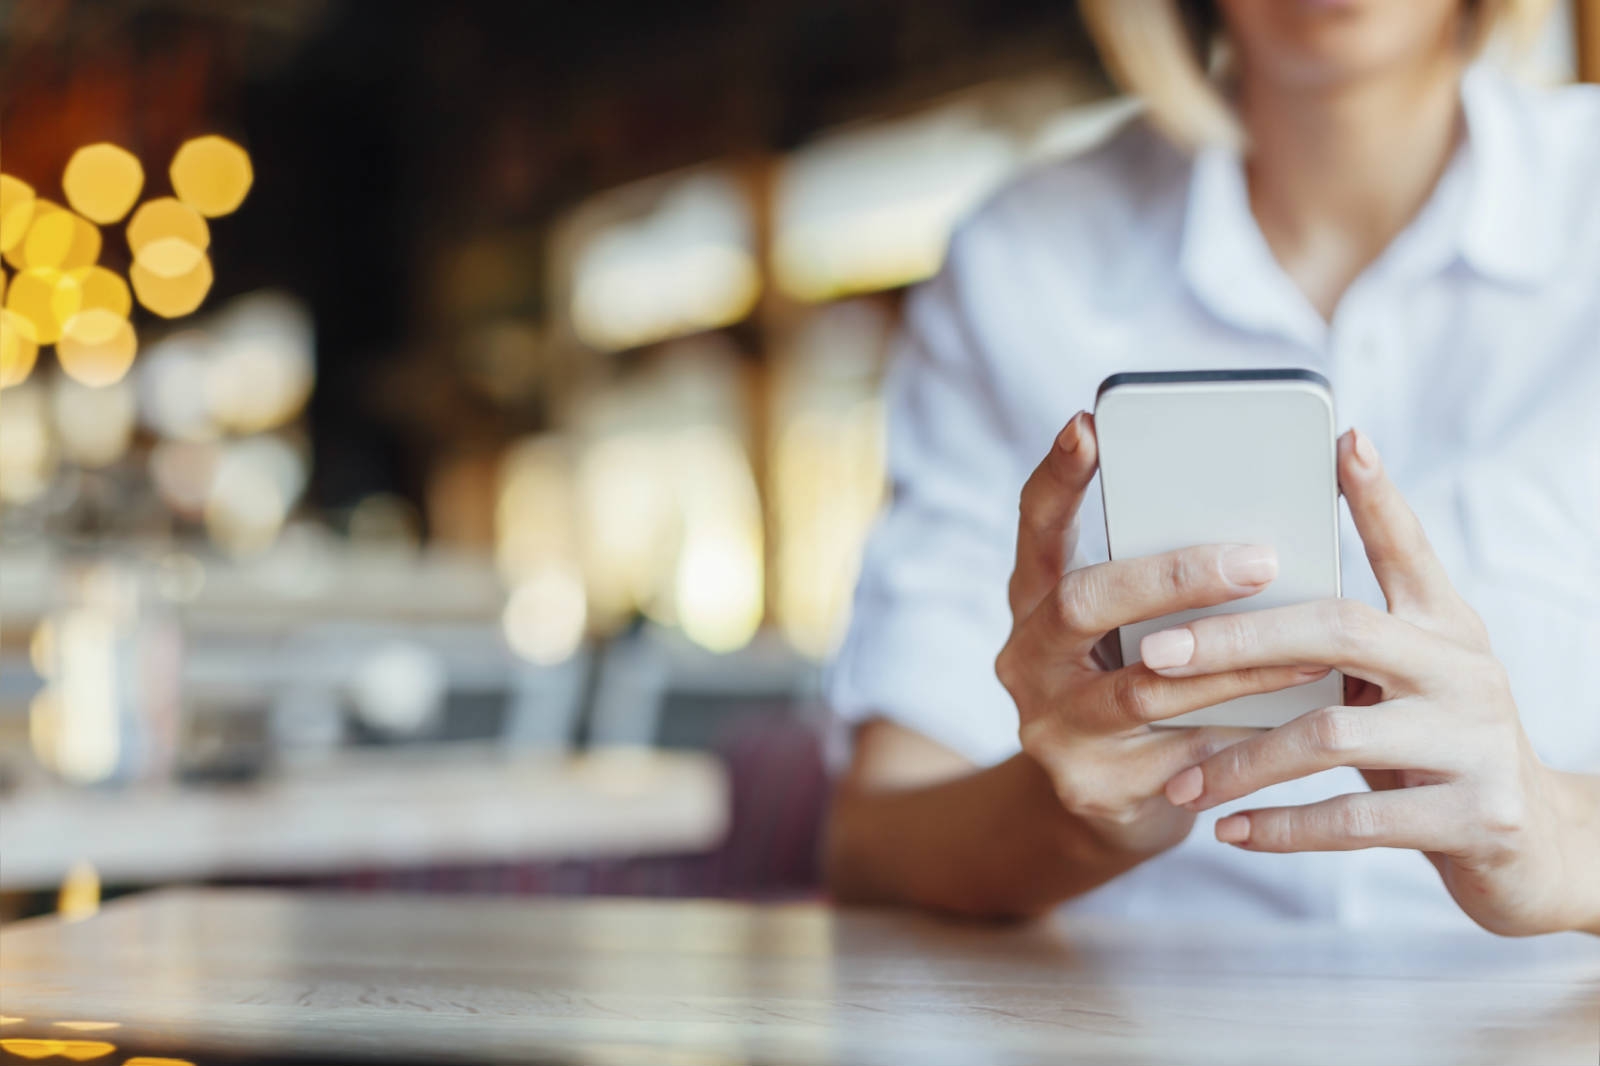 MultiNet from Columbus Business Mobile - an innovative, new 4G business mobile service from Columbus UK. Always get the best possible signal, whatever the mobile network with UK roaming capability.